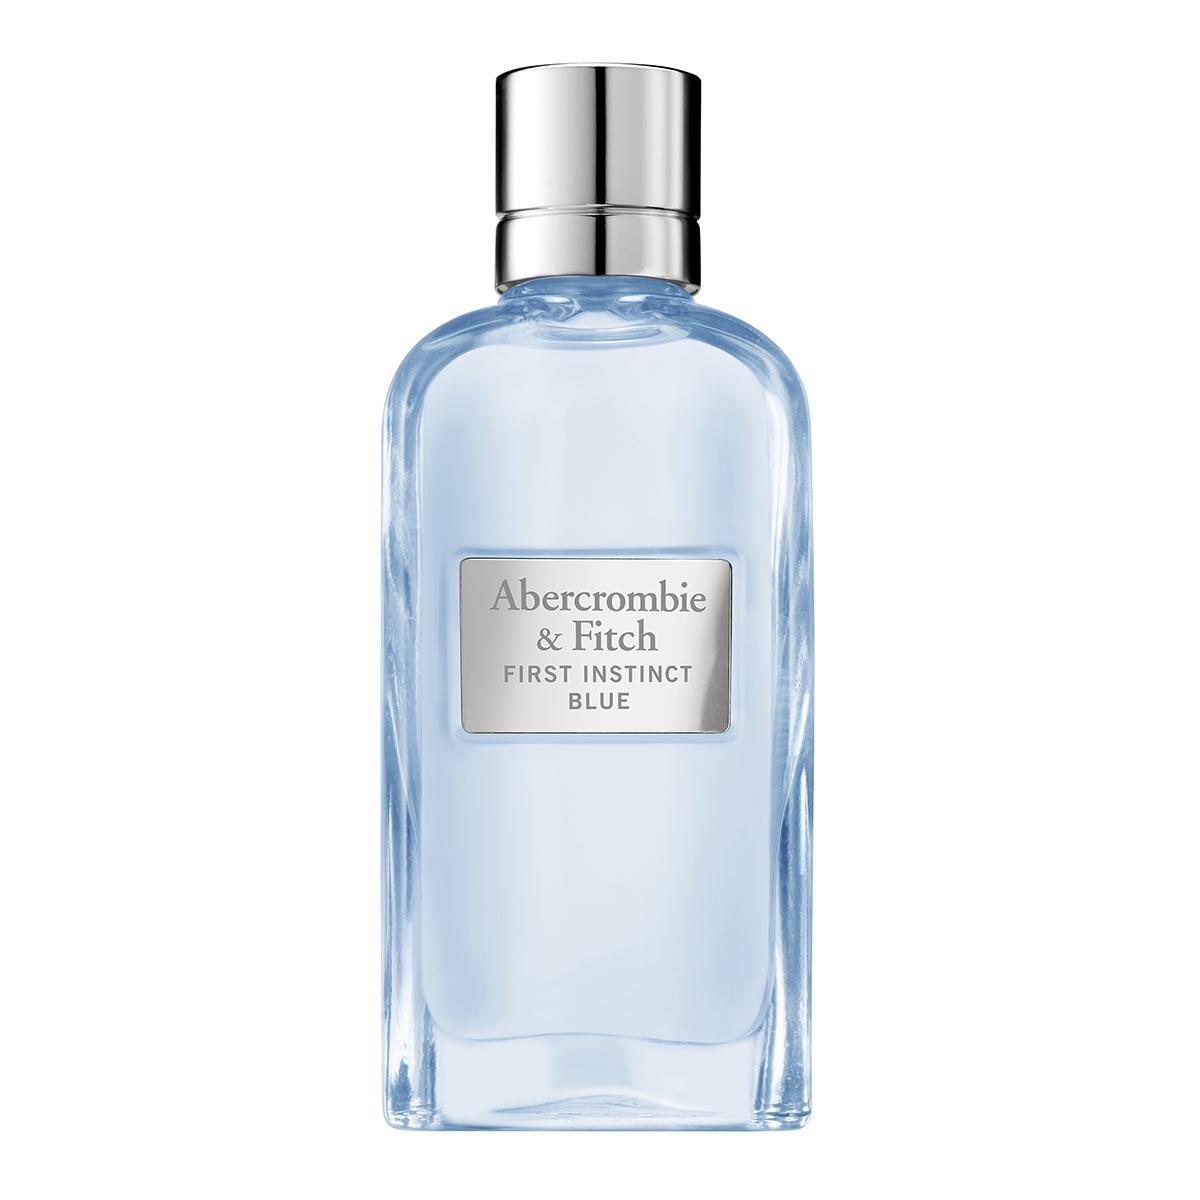 Abercrombie fitch first instinct blue eau de parfum 50ml vaporizador